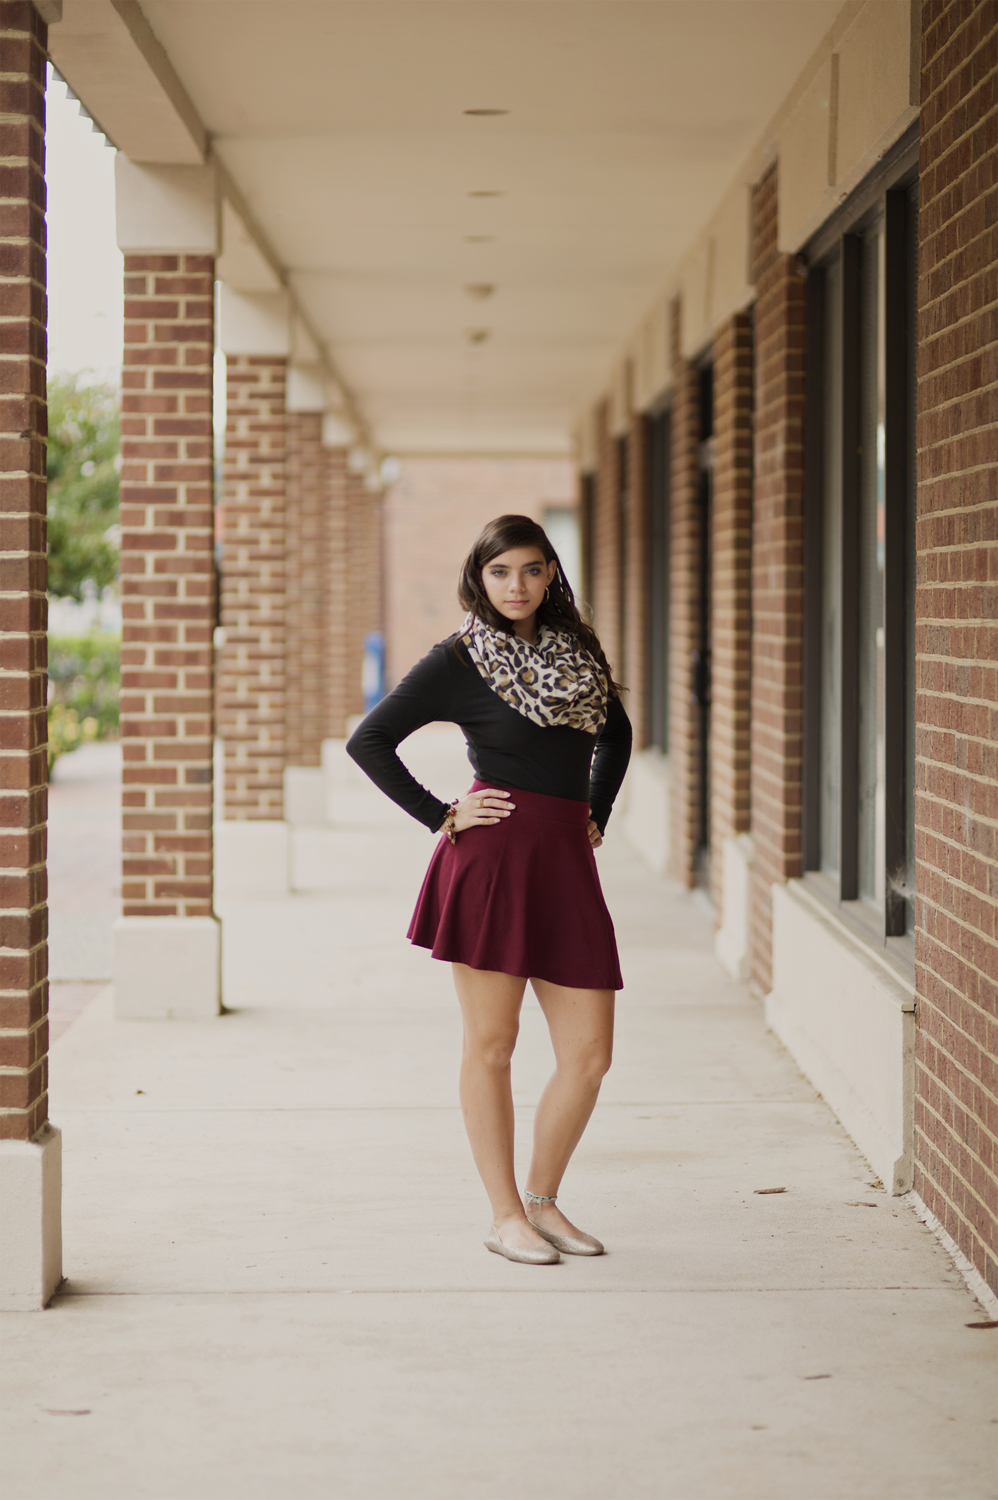 Downtown urban senior portraits | cranberry red skirt and leapord print scarf | Hampton, Virginia